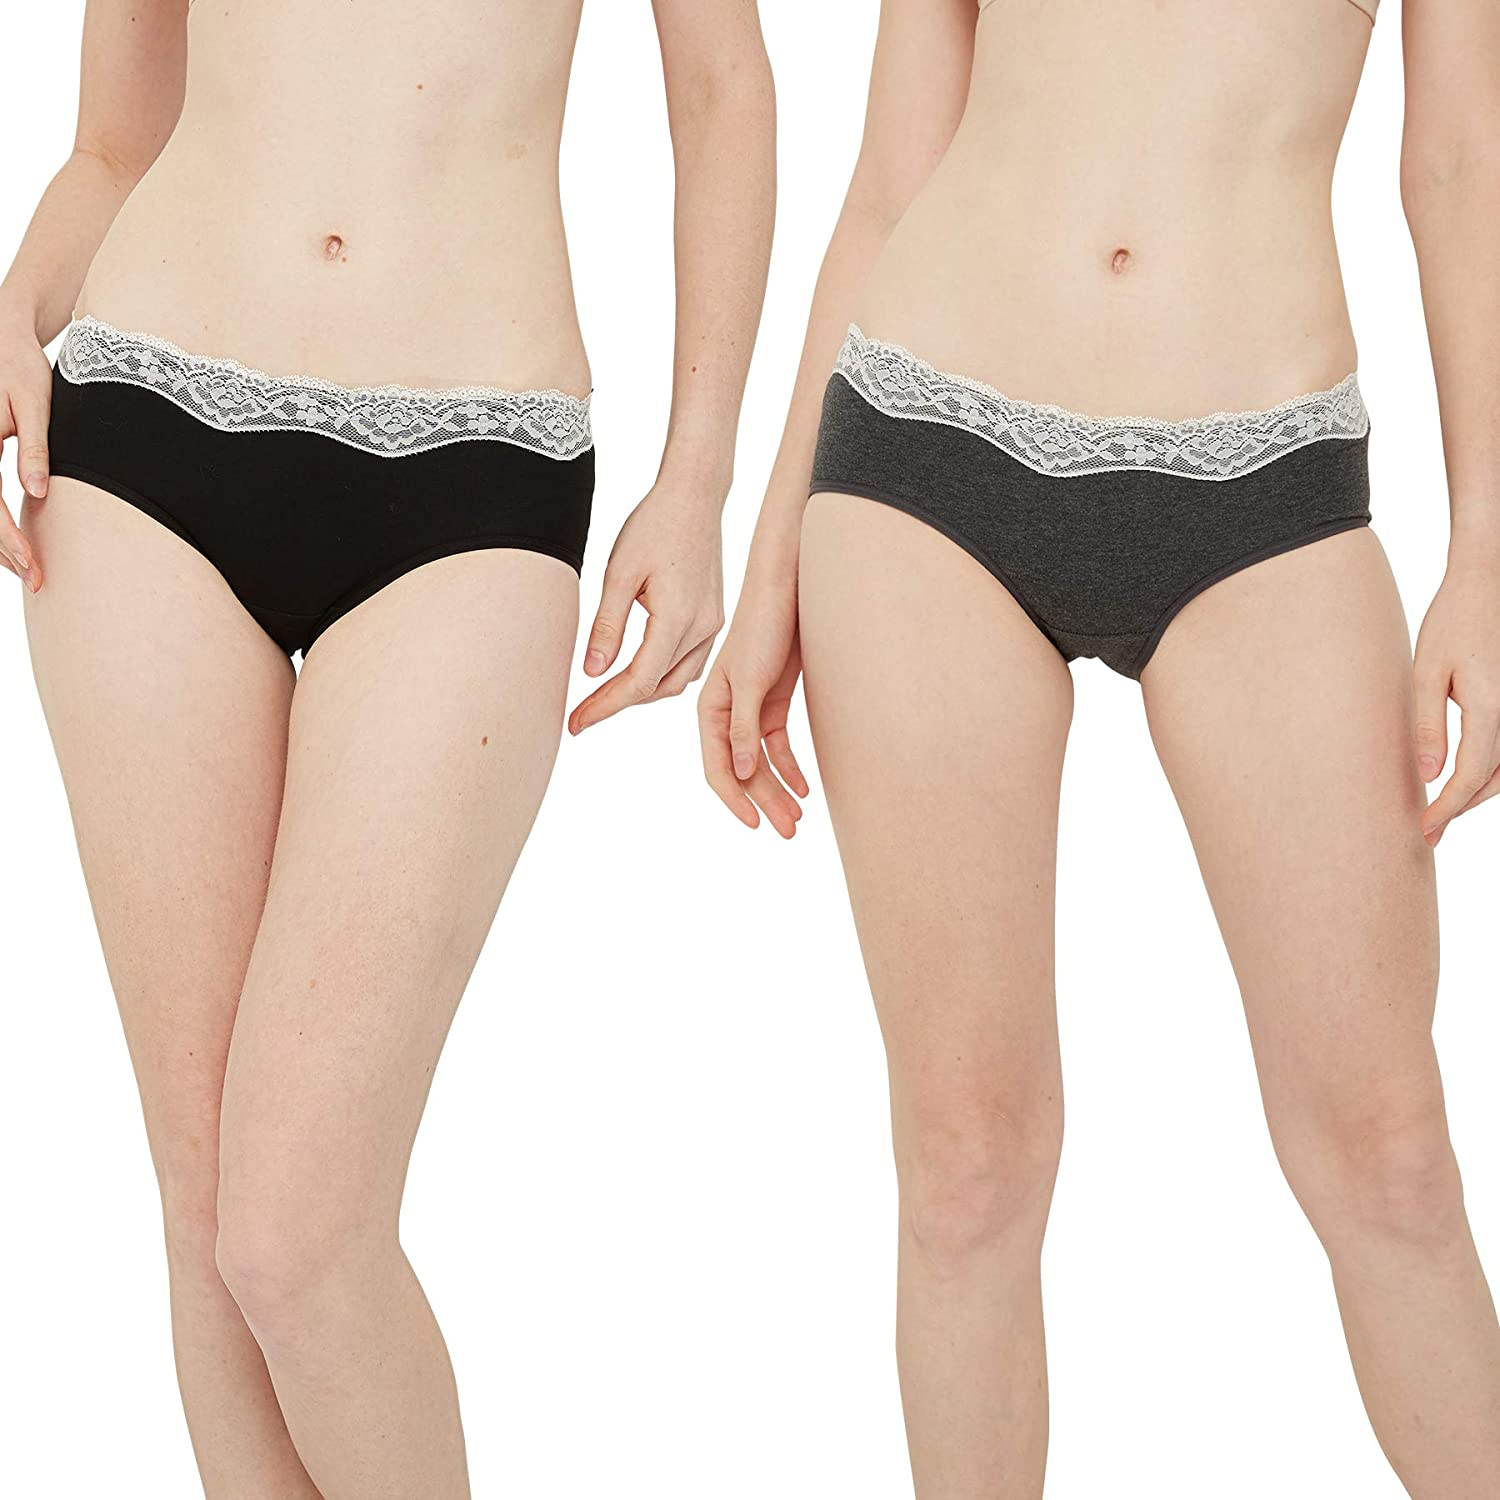 INNERSY Womens Lace Underwear Hipster Panties Cotton Underwear Tagless 6 Pack